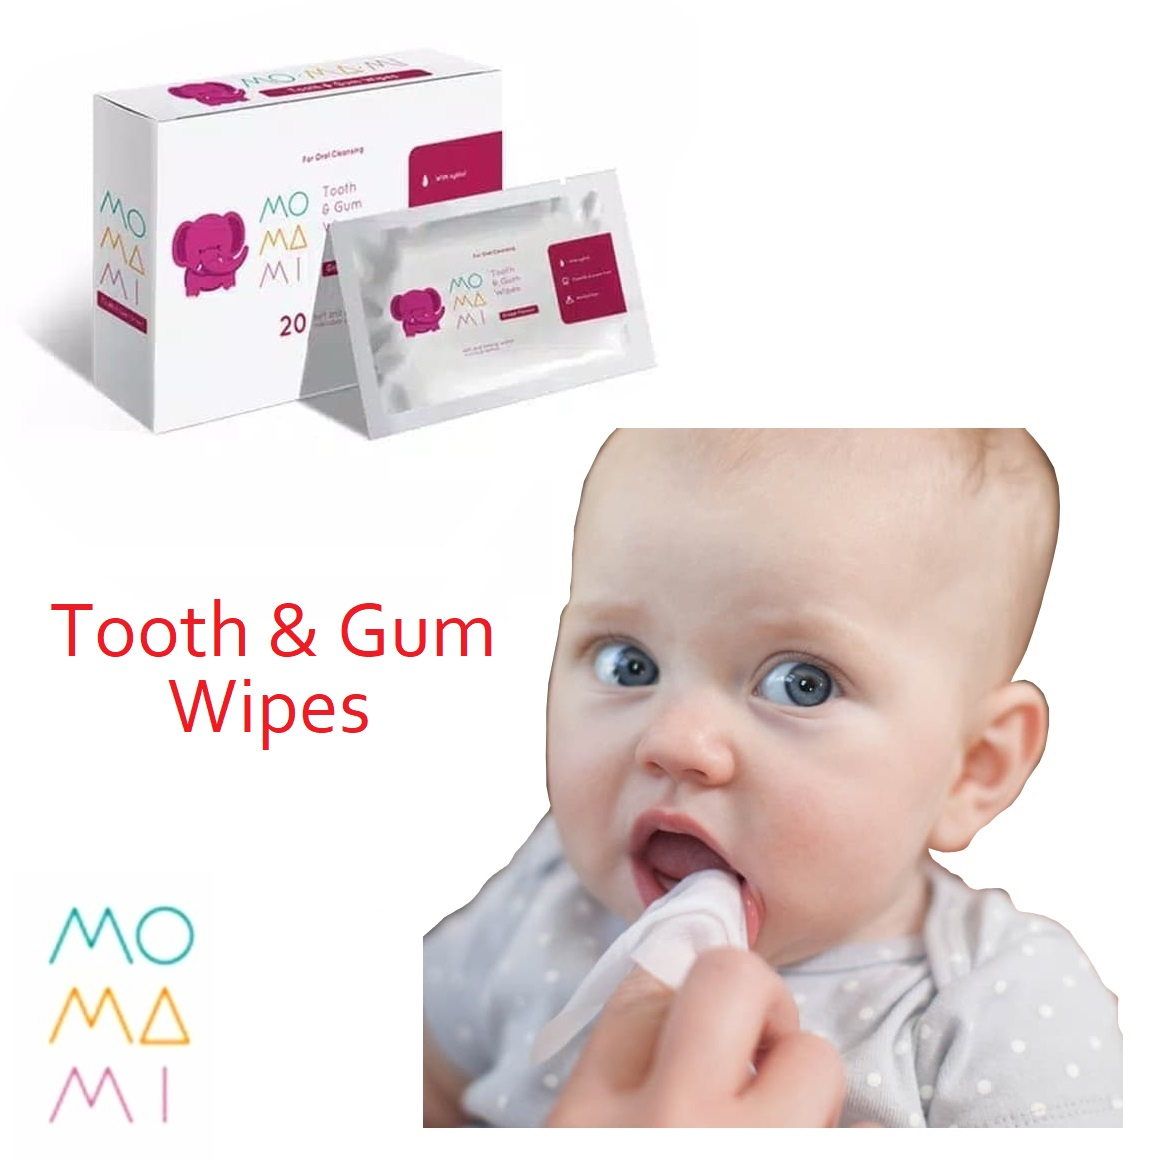 MoMaMi Tooth Gum Wipes (2)